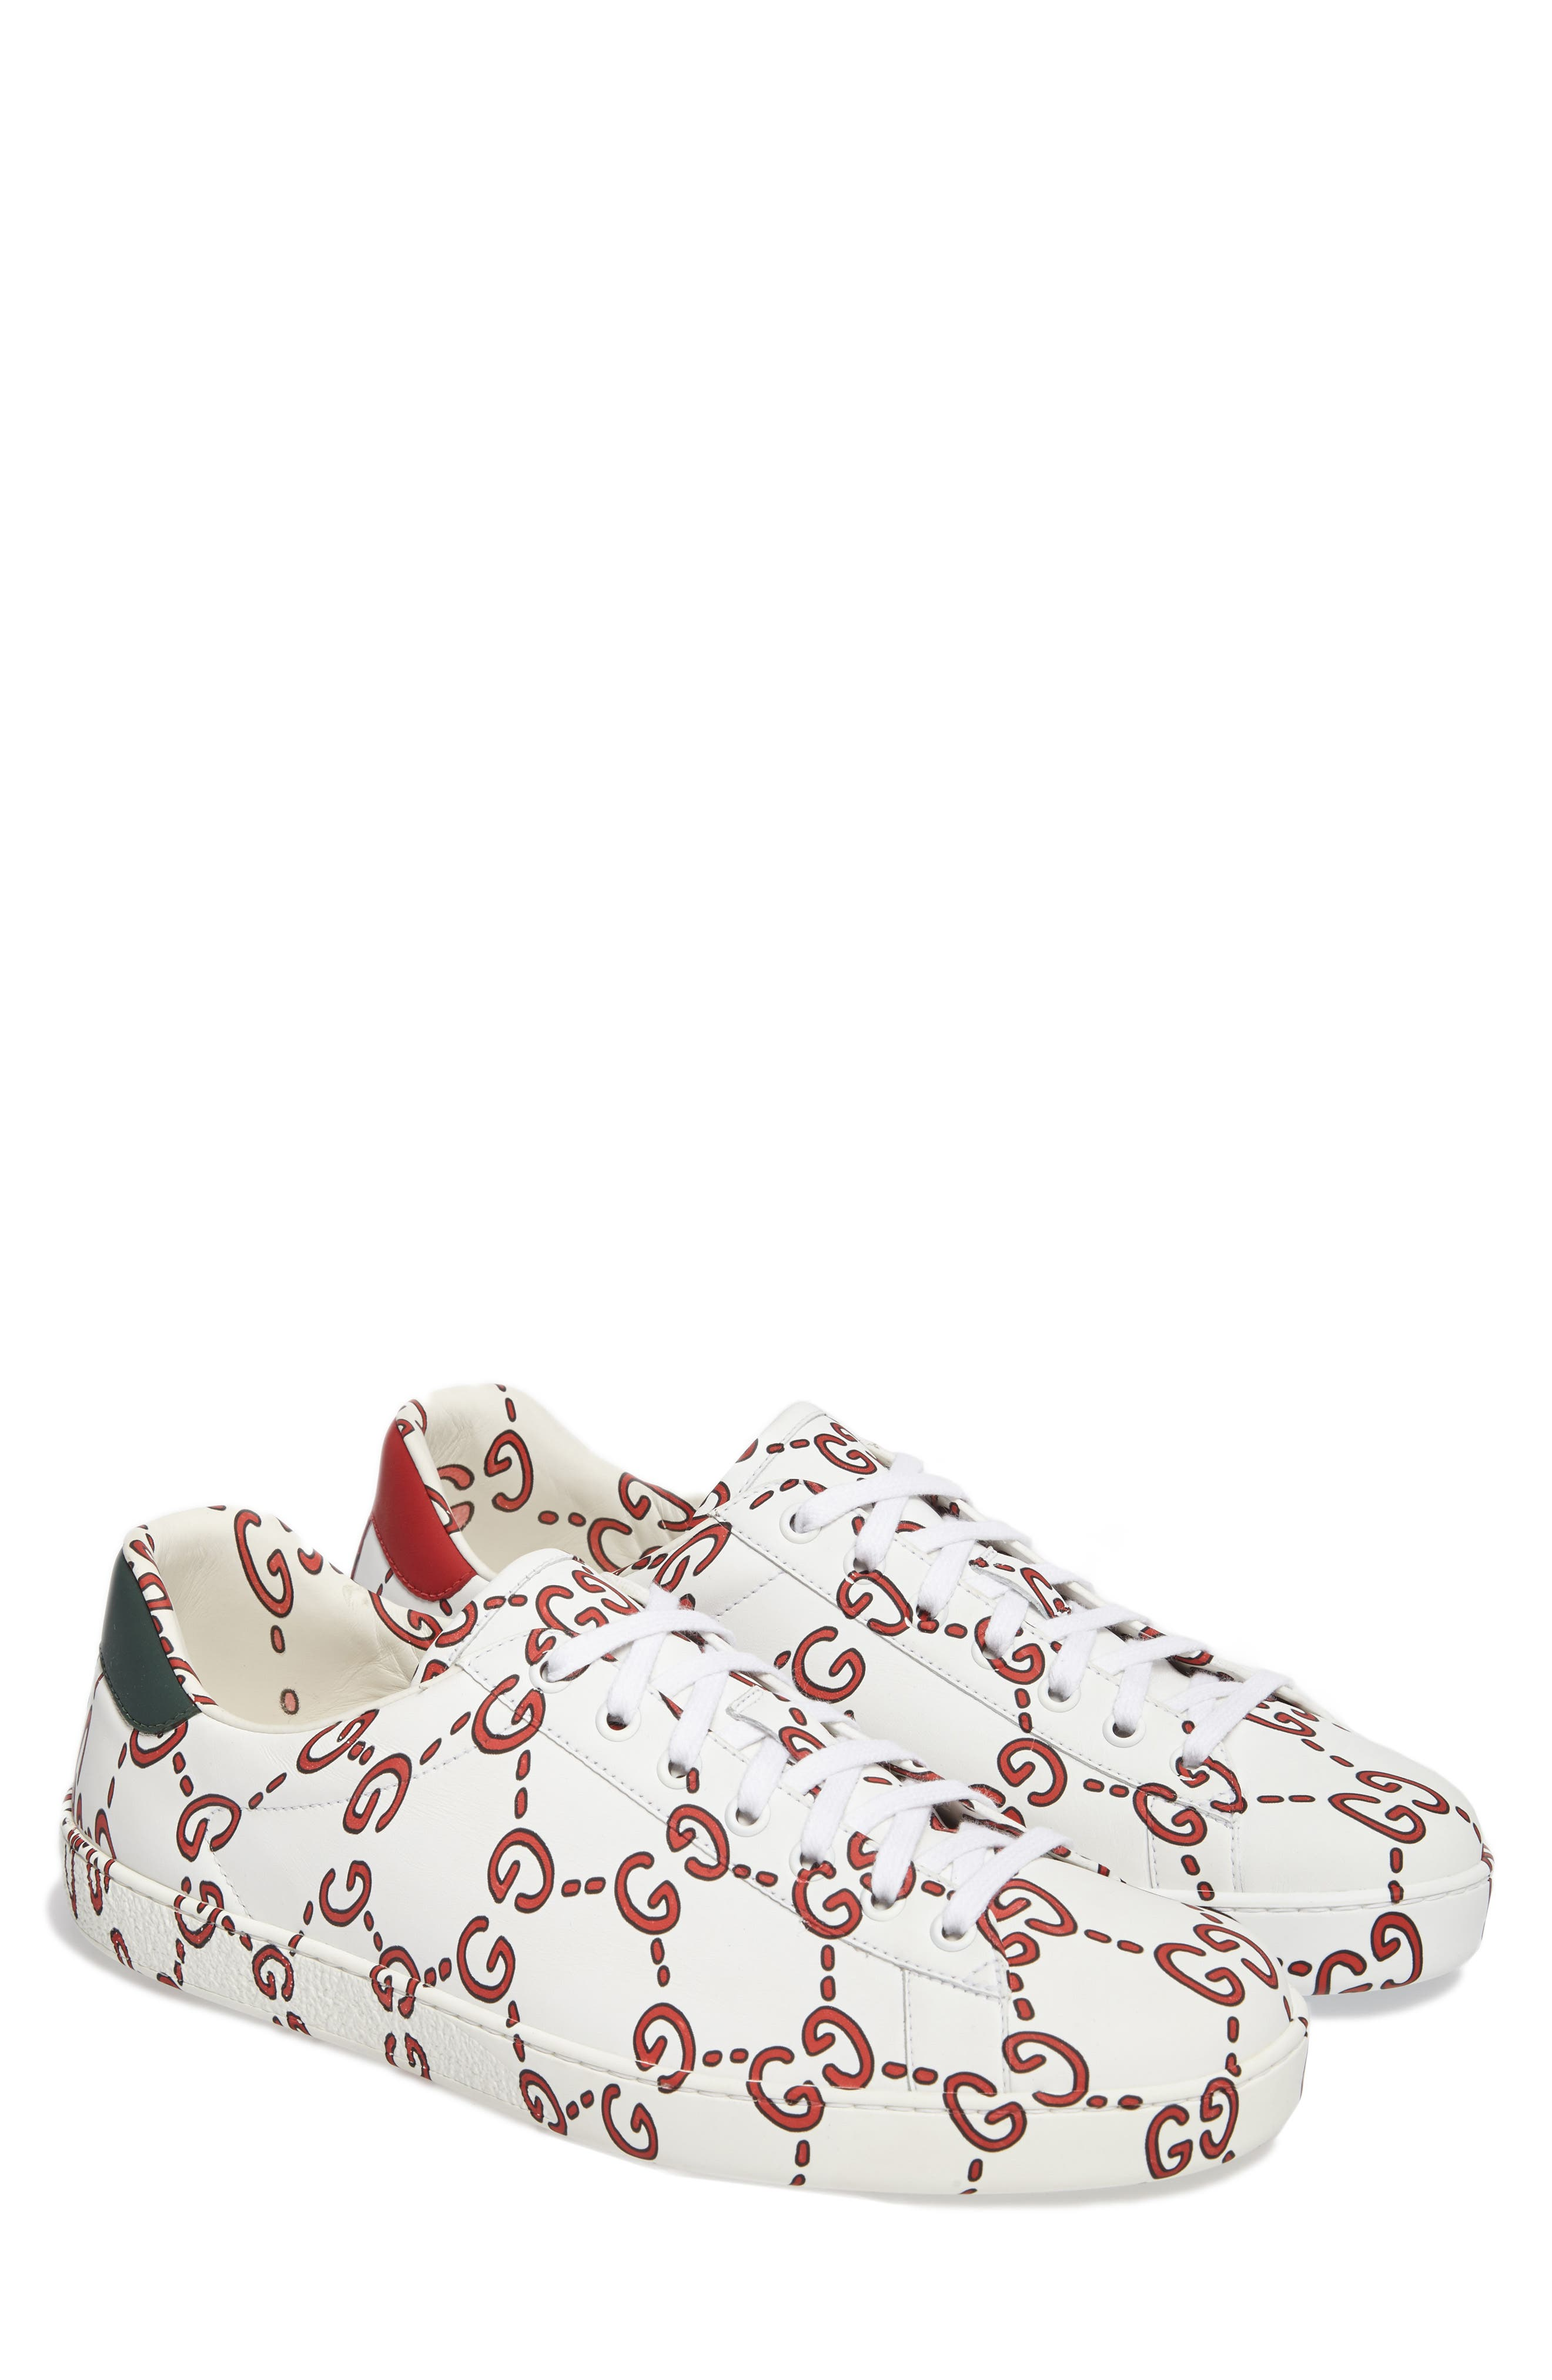 GUCCI, New Ace GG Print Sneaker, Main thumbnail 1, color, WHITE